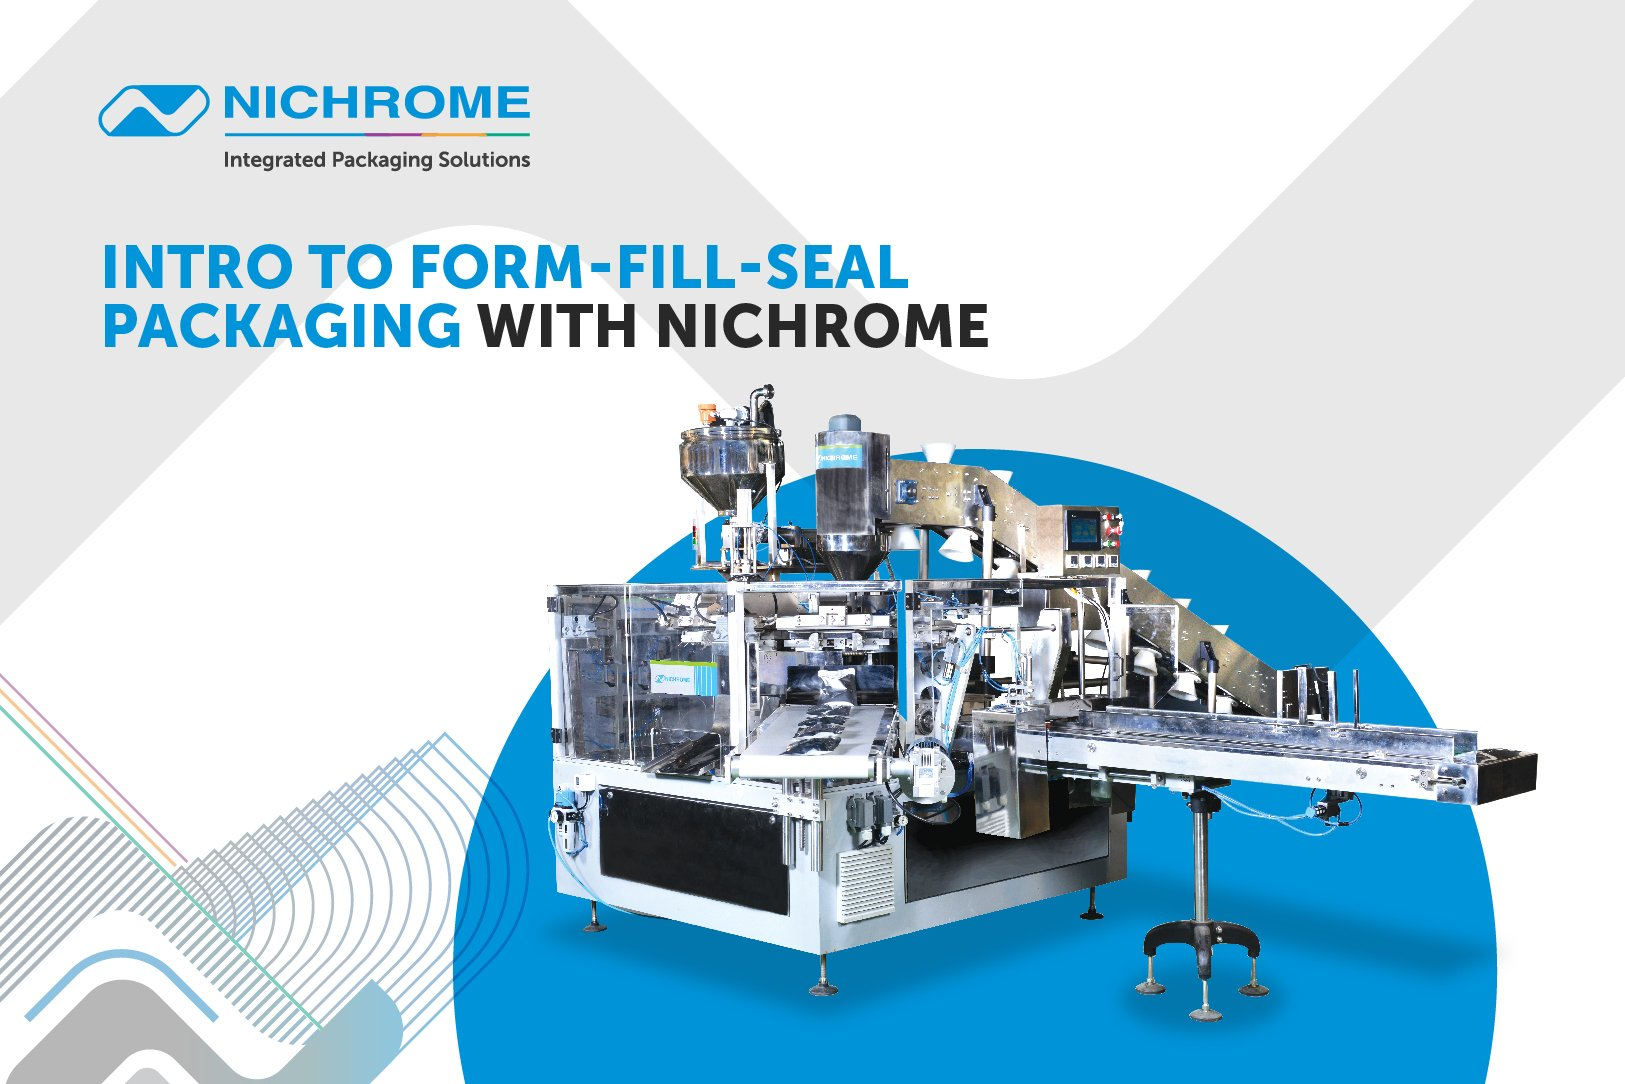 INTRO TO FORM-FILL-SEAL PACKAGING WITH NICHROME